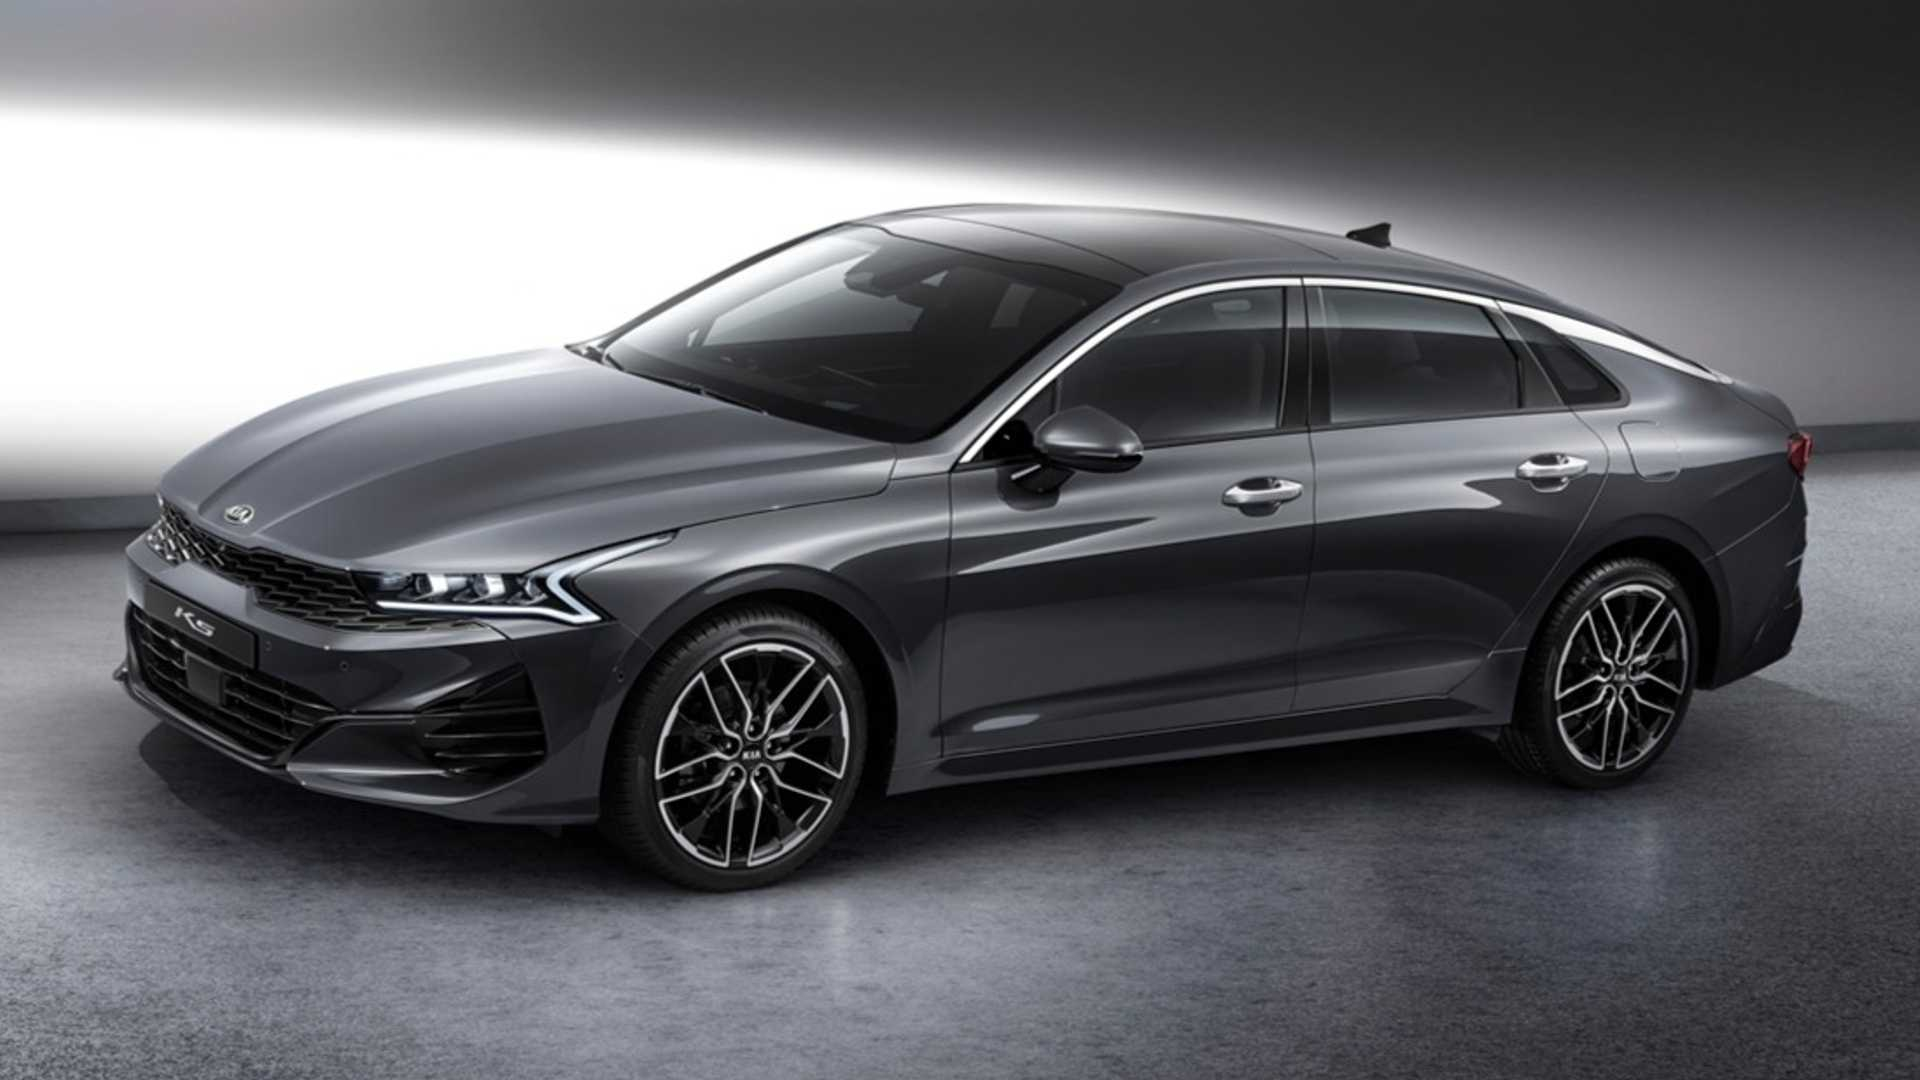 2021 Kia Optima Gt Confirmed With 286 Hp, 8-Speed Dual-Clutch - 2022 Kia Optima Special Edition Release Date, Gas Mileage